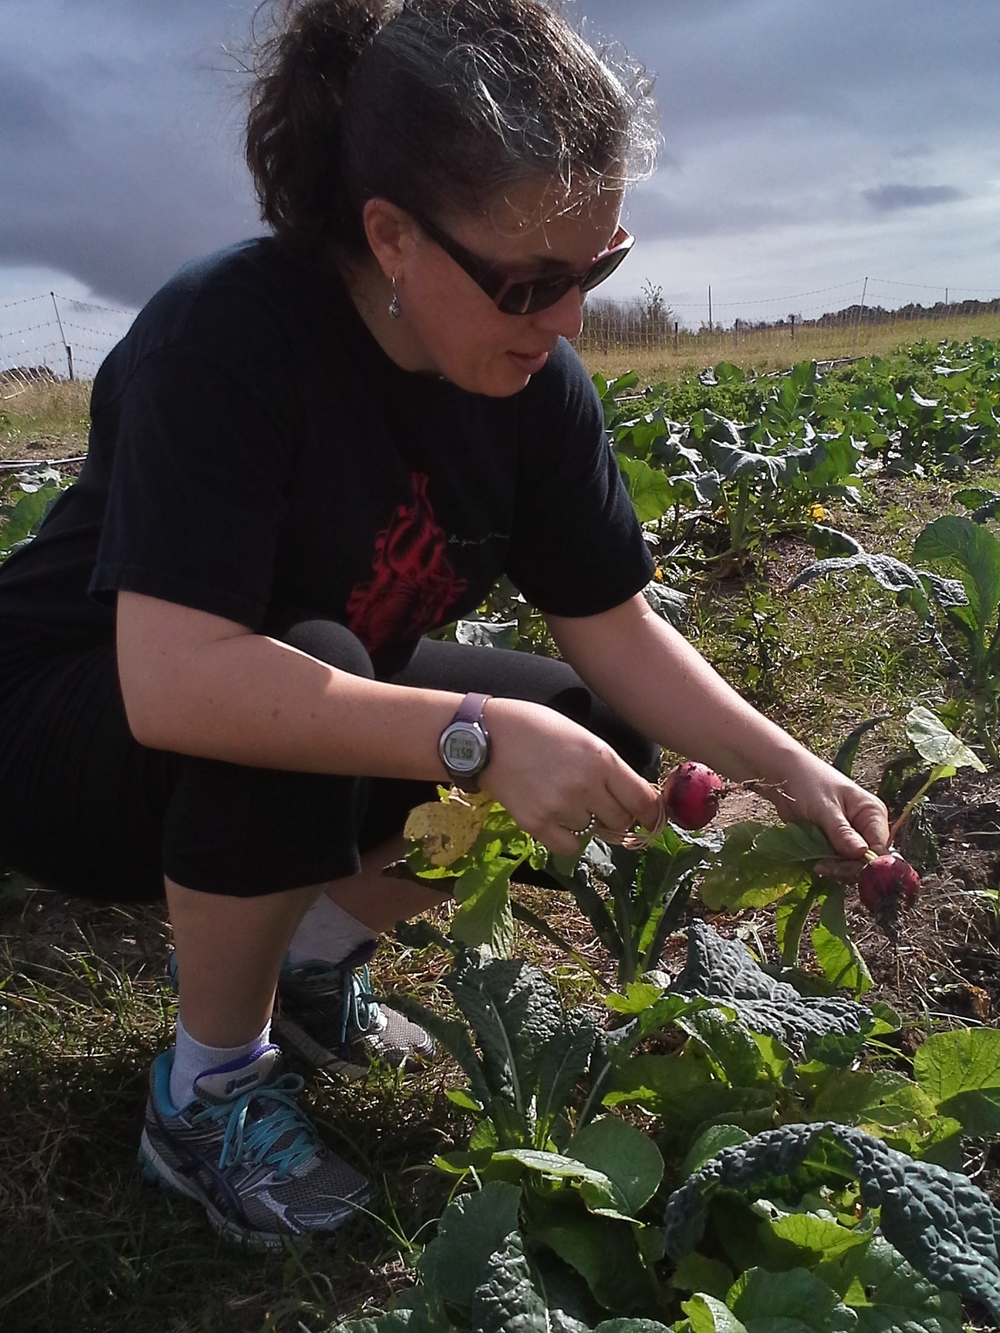 My sister Julia helping with the radish harvest.